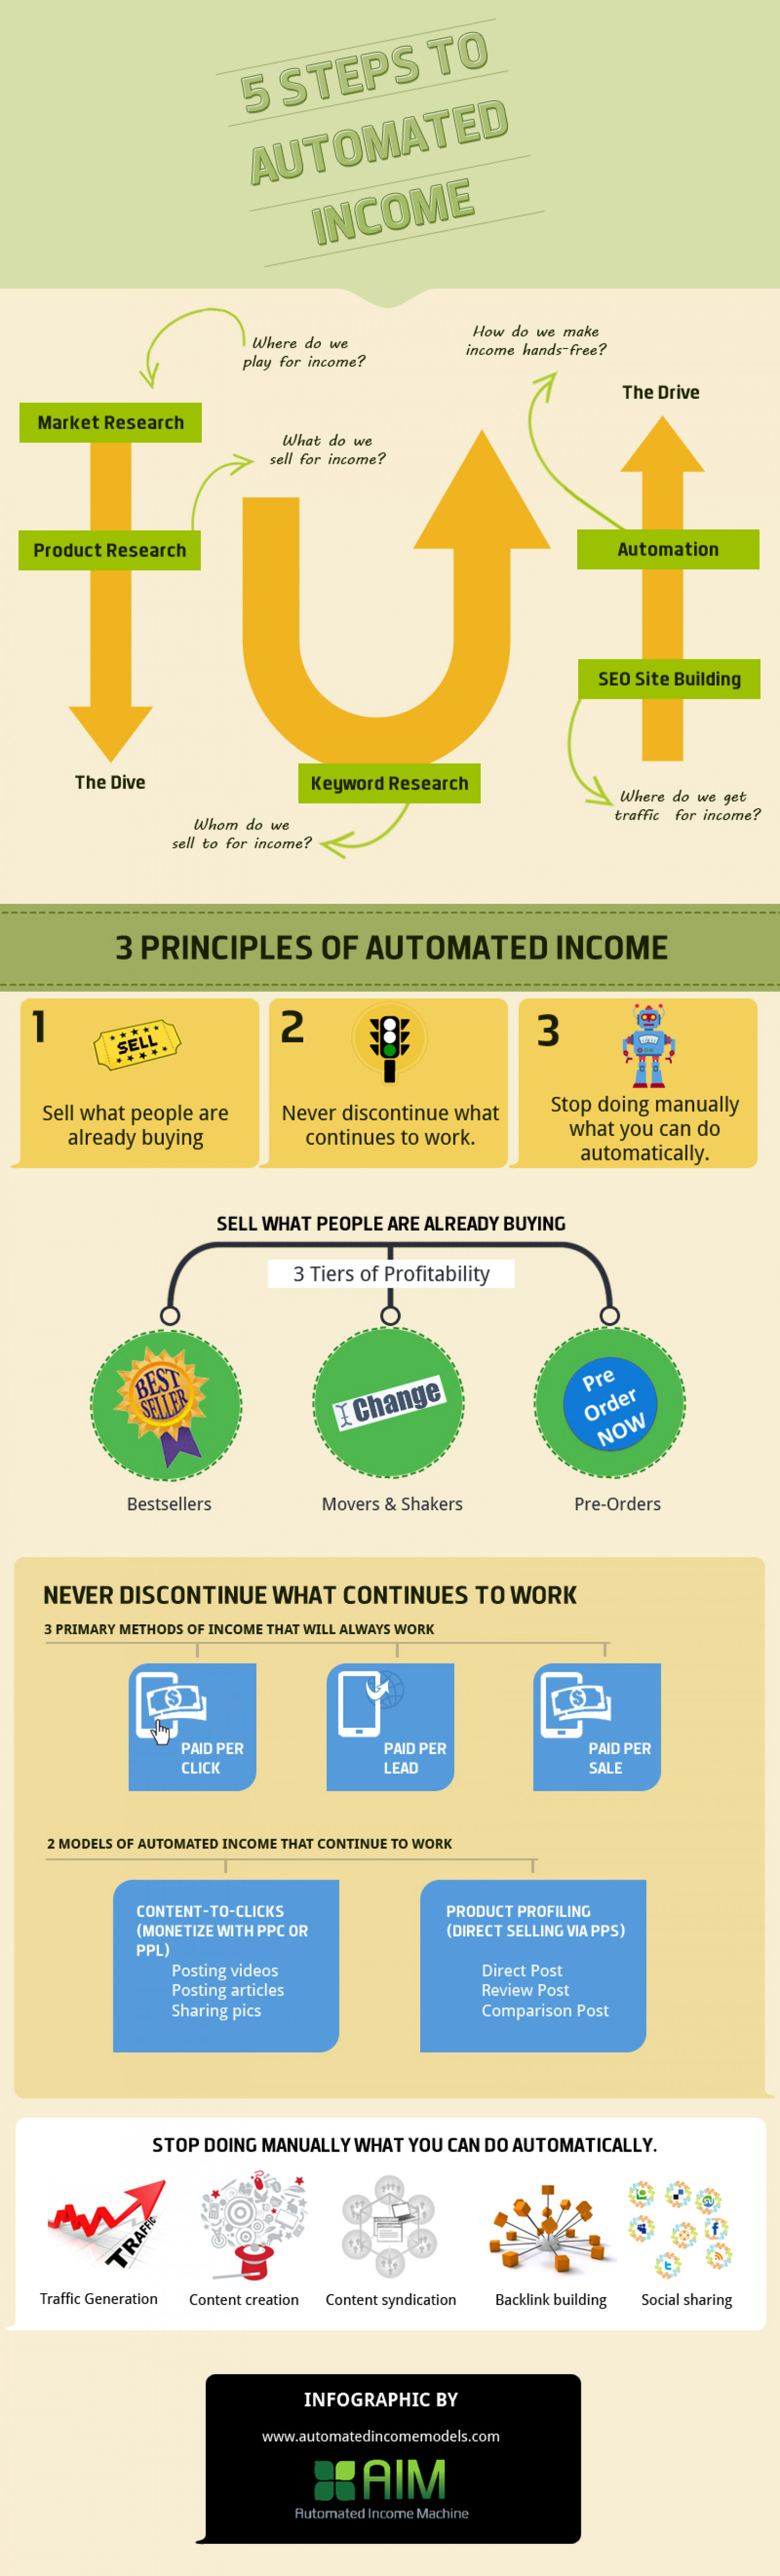 5 Steps To Automated Income Infographic